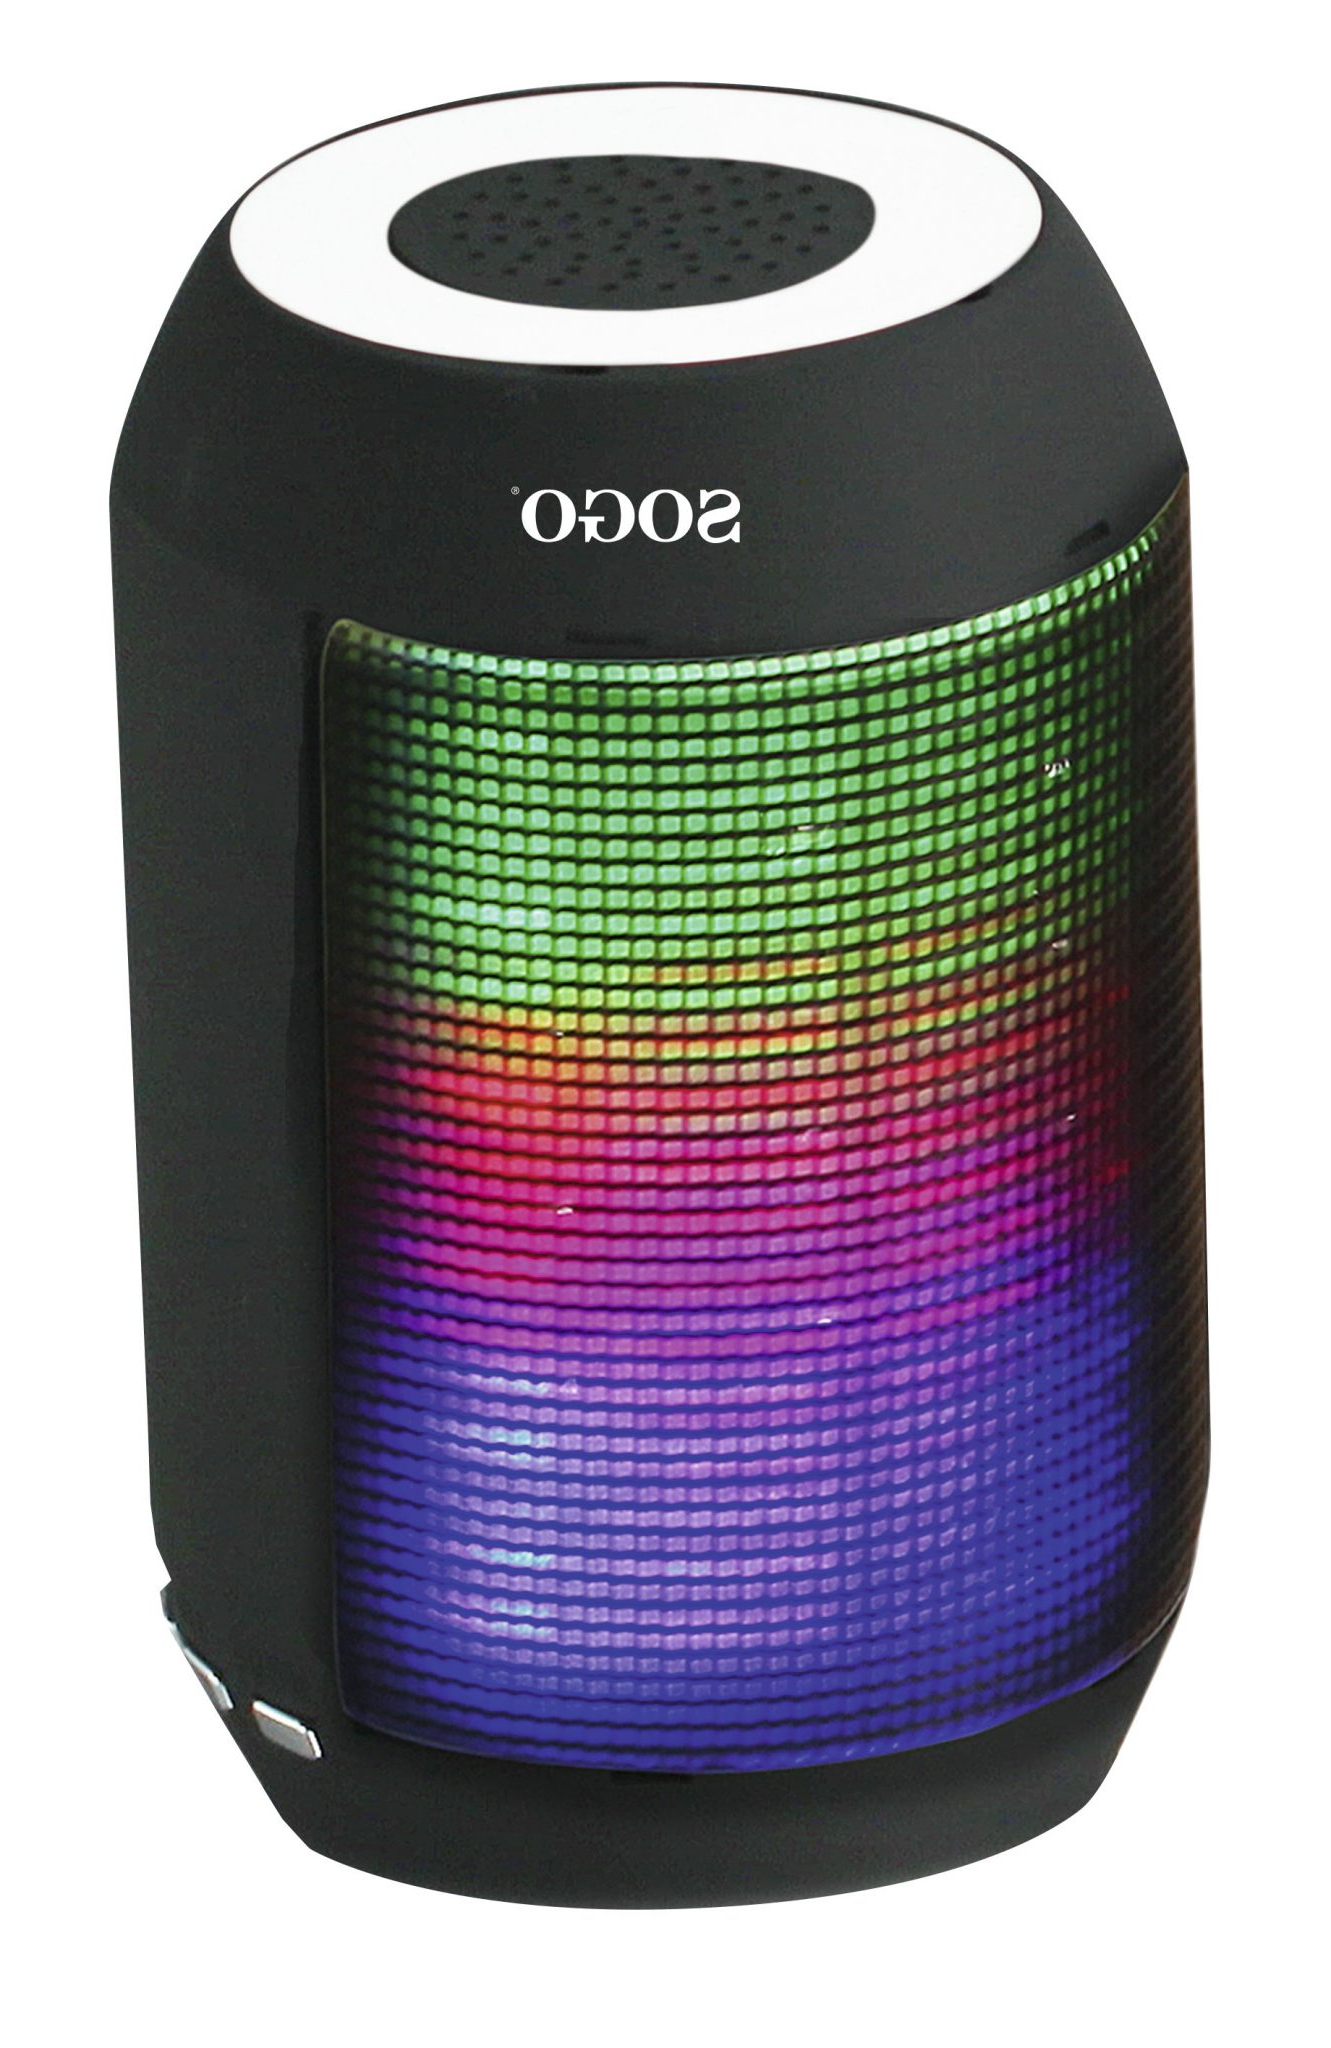 Altavoz Portatil Bluetooth 4pde sogo Altavoz Portatil Bluetooth Con Iluminacion Led Negro 50